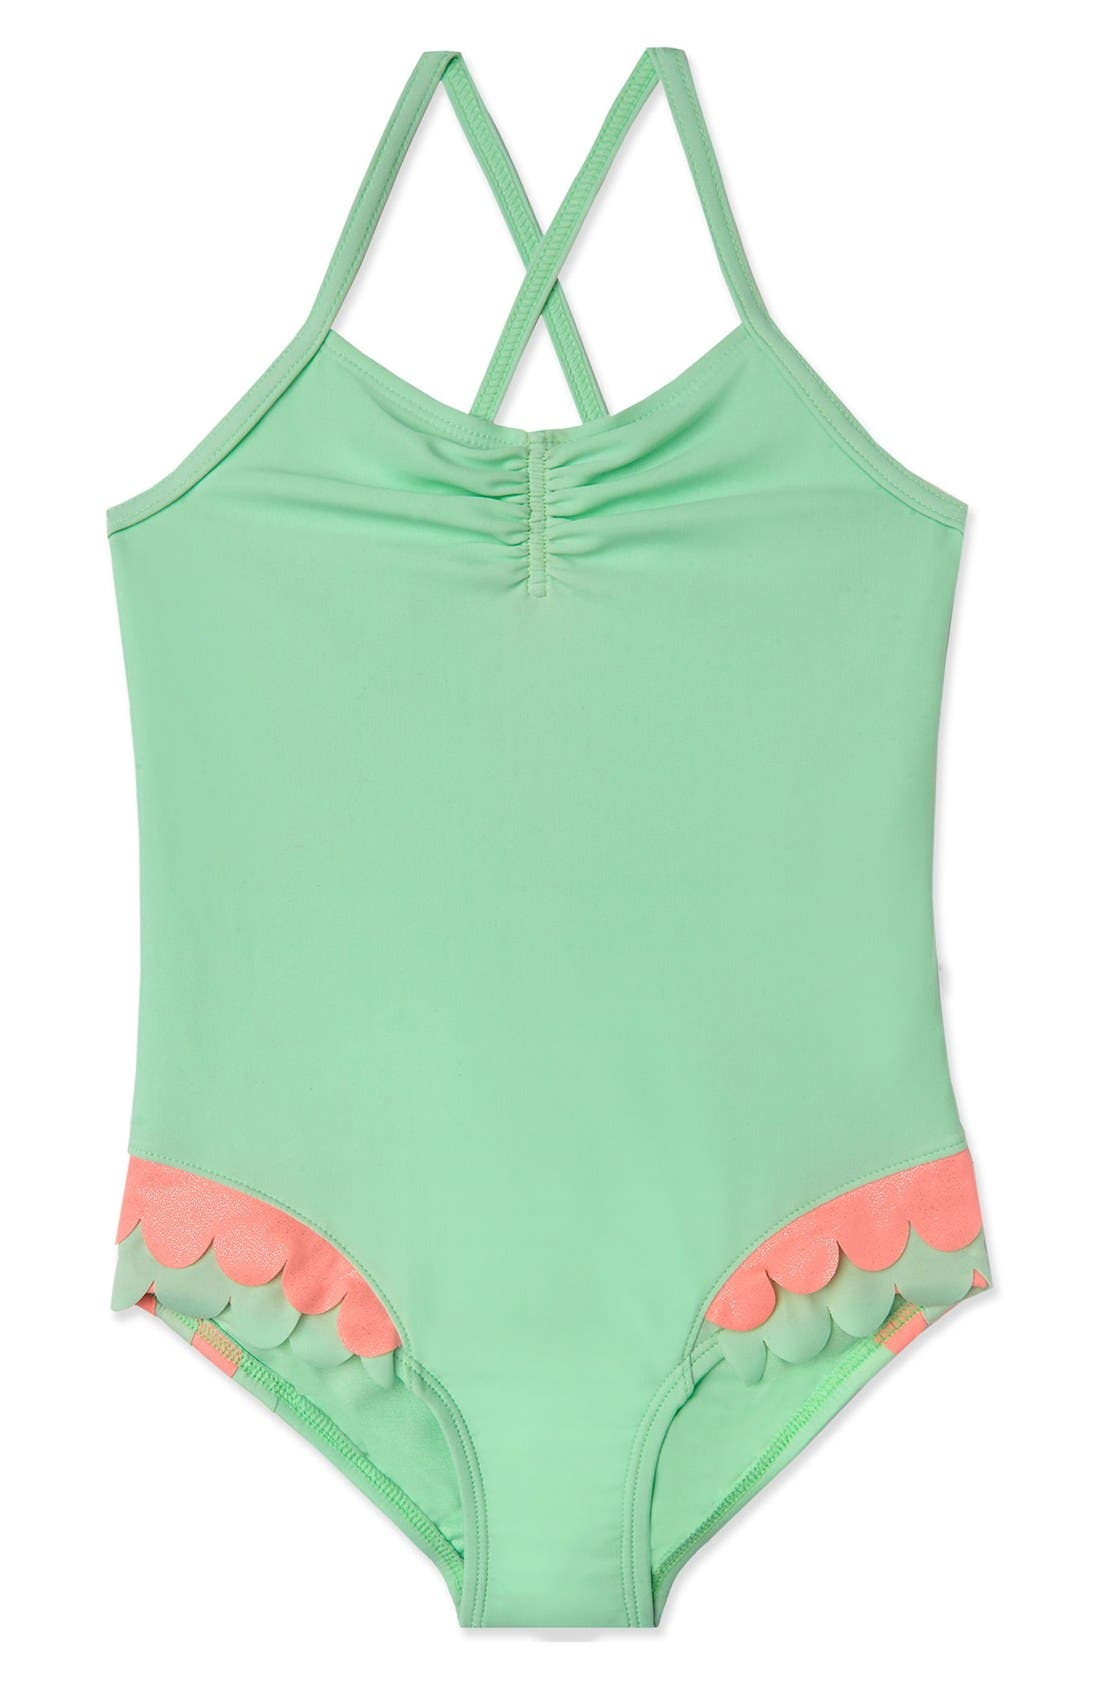 'Mermaid Scallops' One-Piece Swimsuit,                             Main thumbnail 1, color,                             Mint Pink